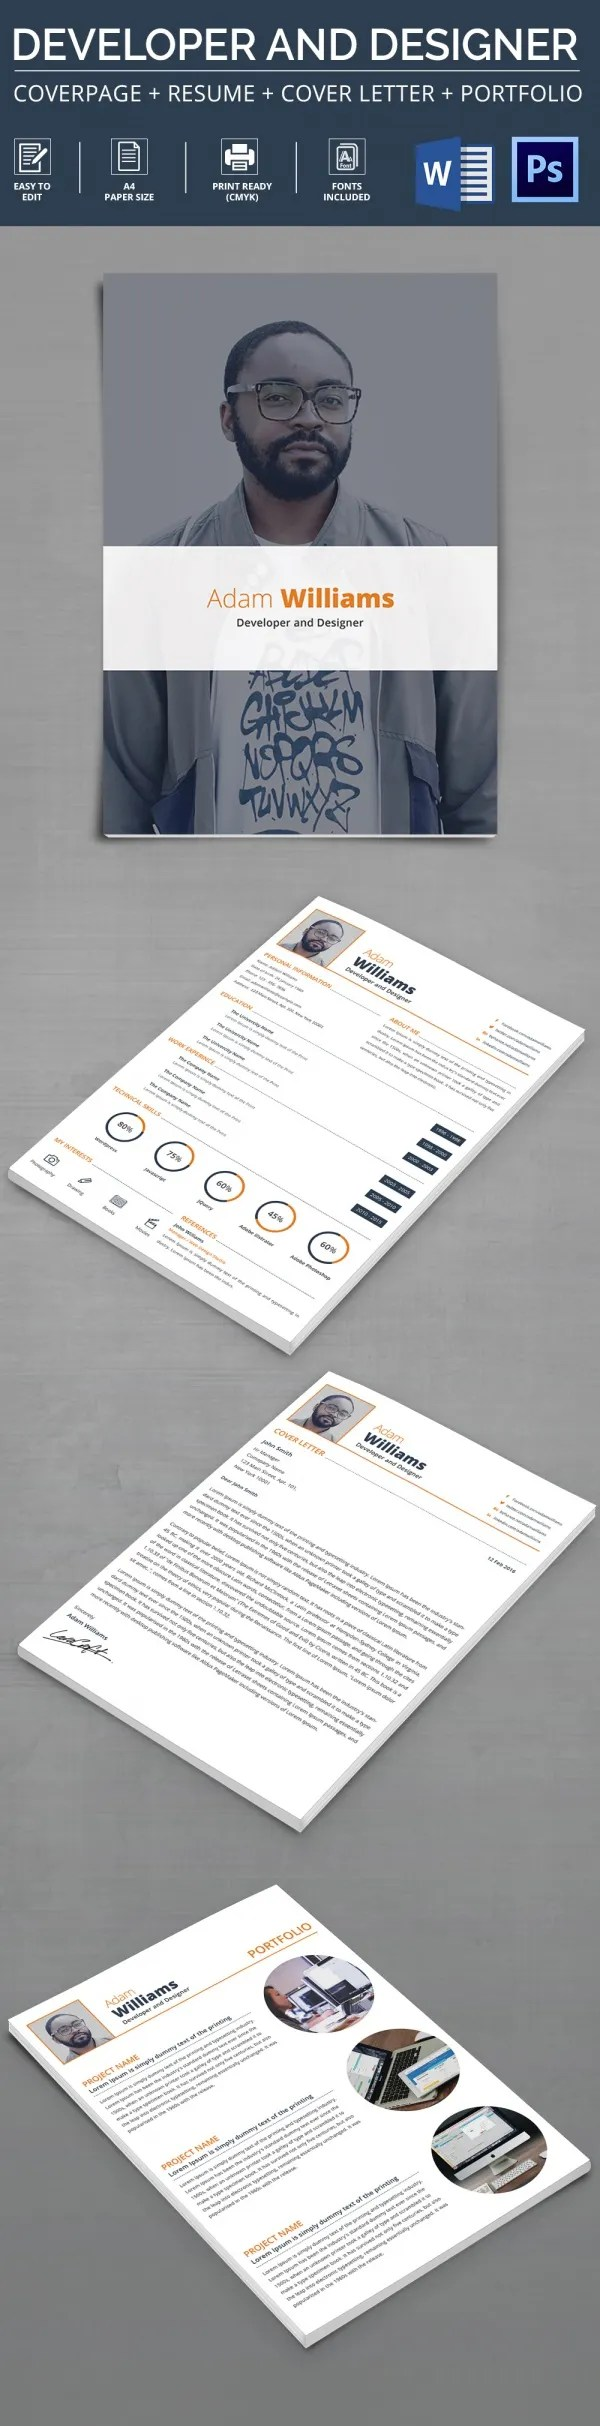 others interesting architecture template with jesse kendal and